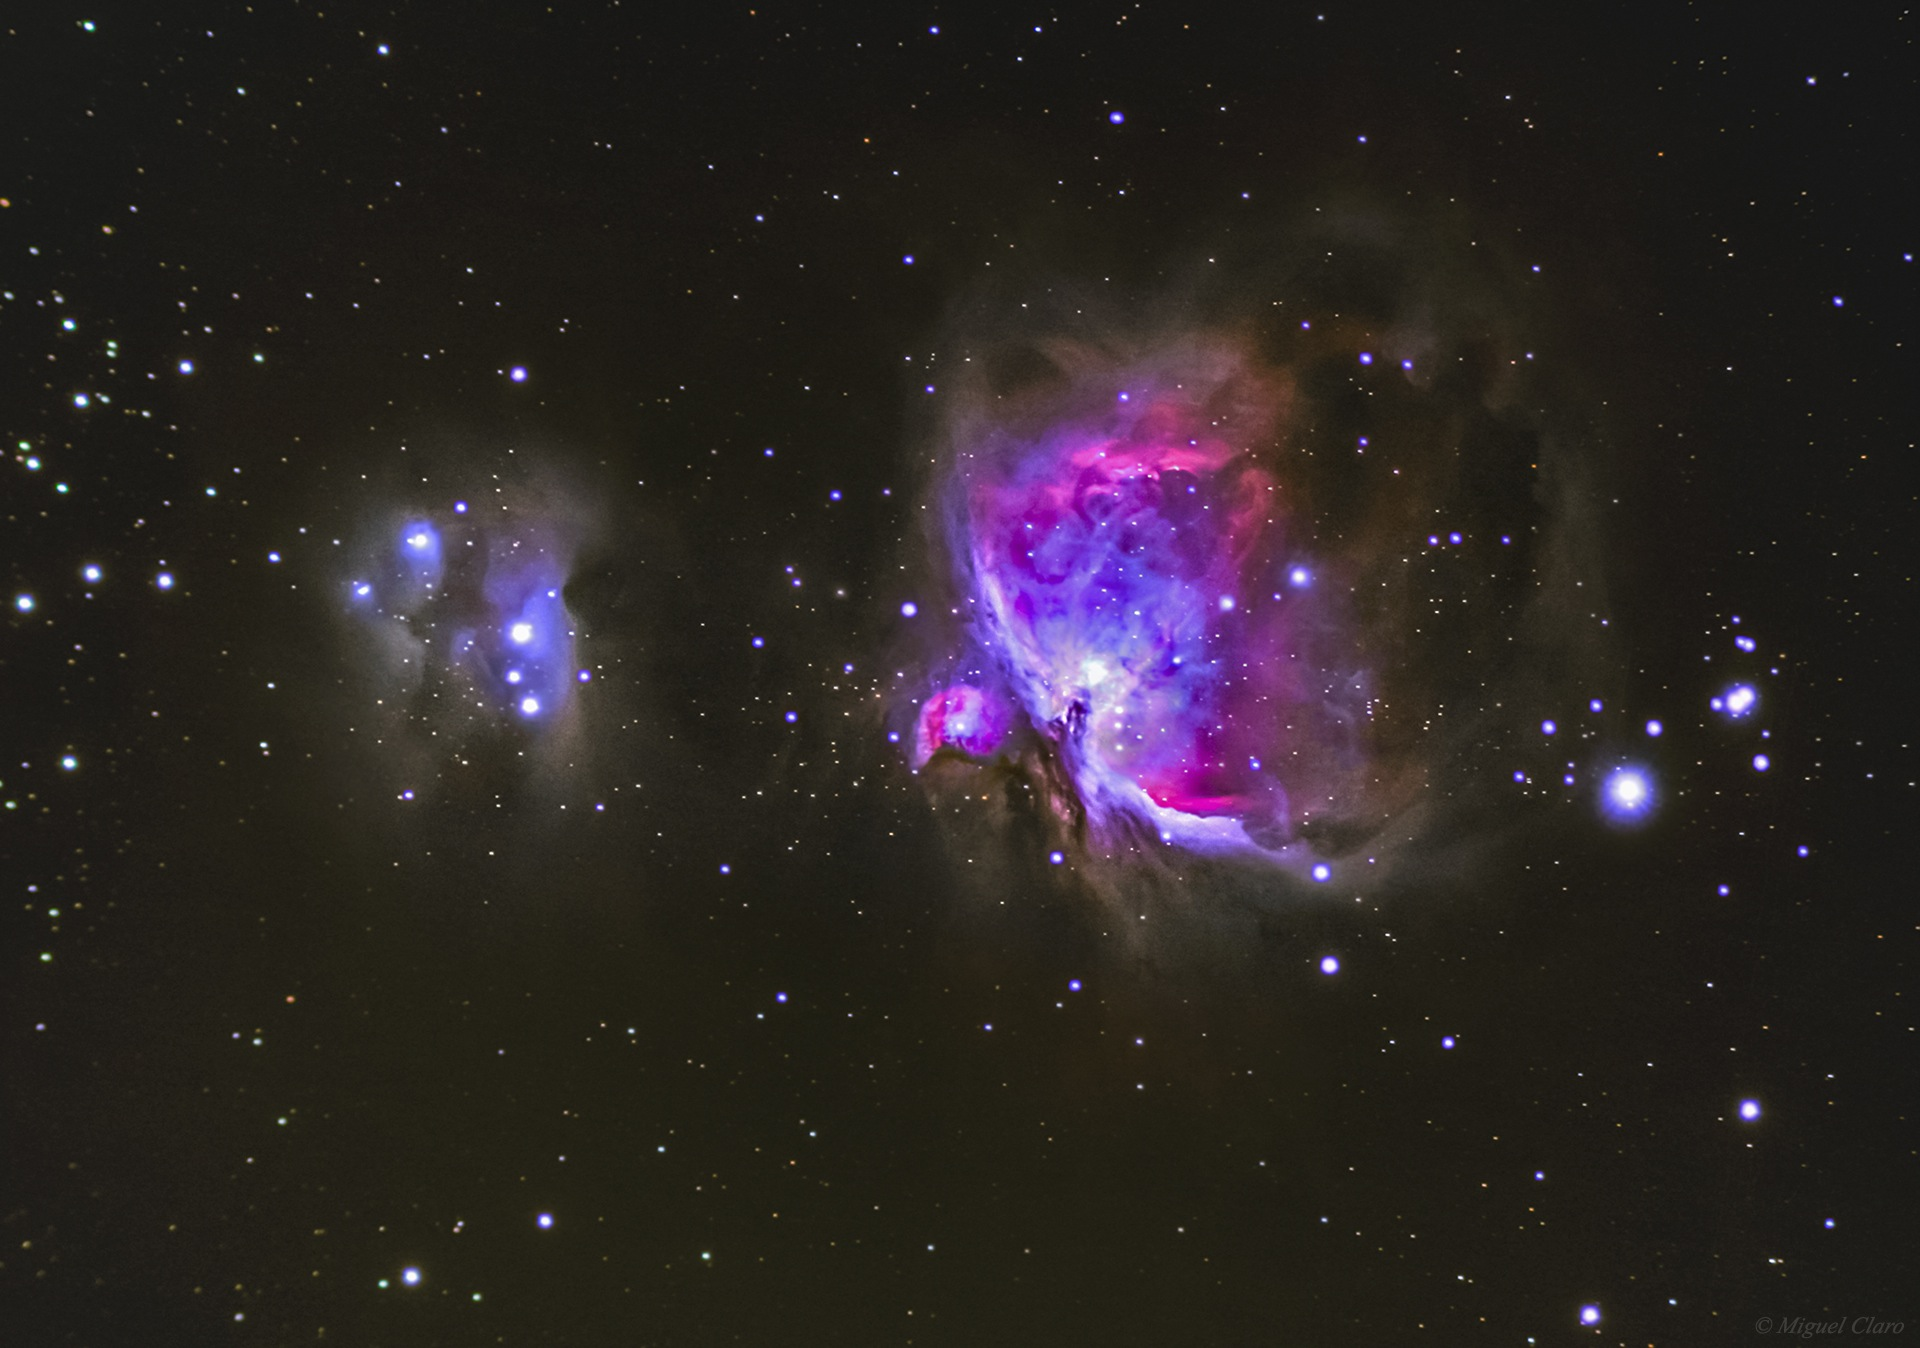 Orion Nebula by Miguel Claro